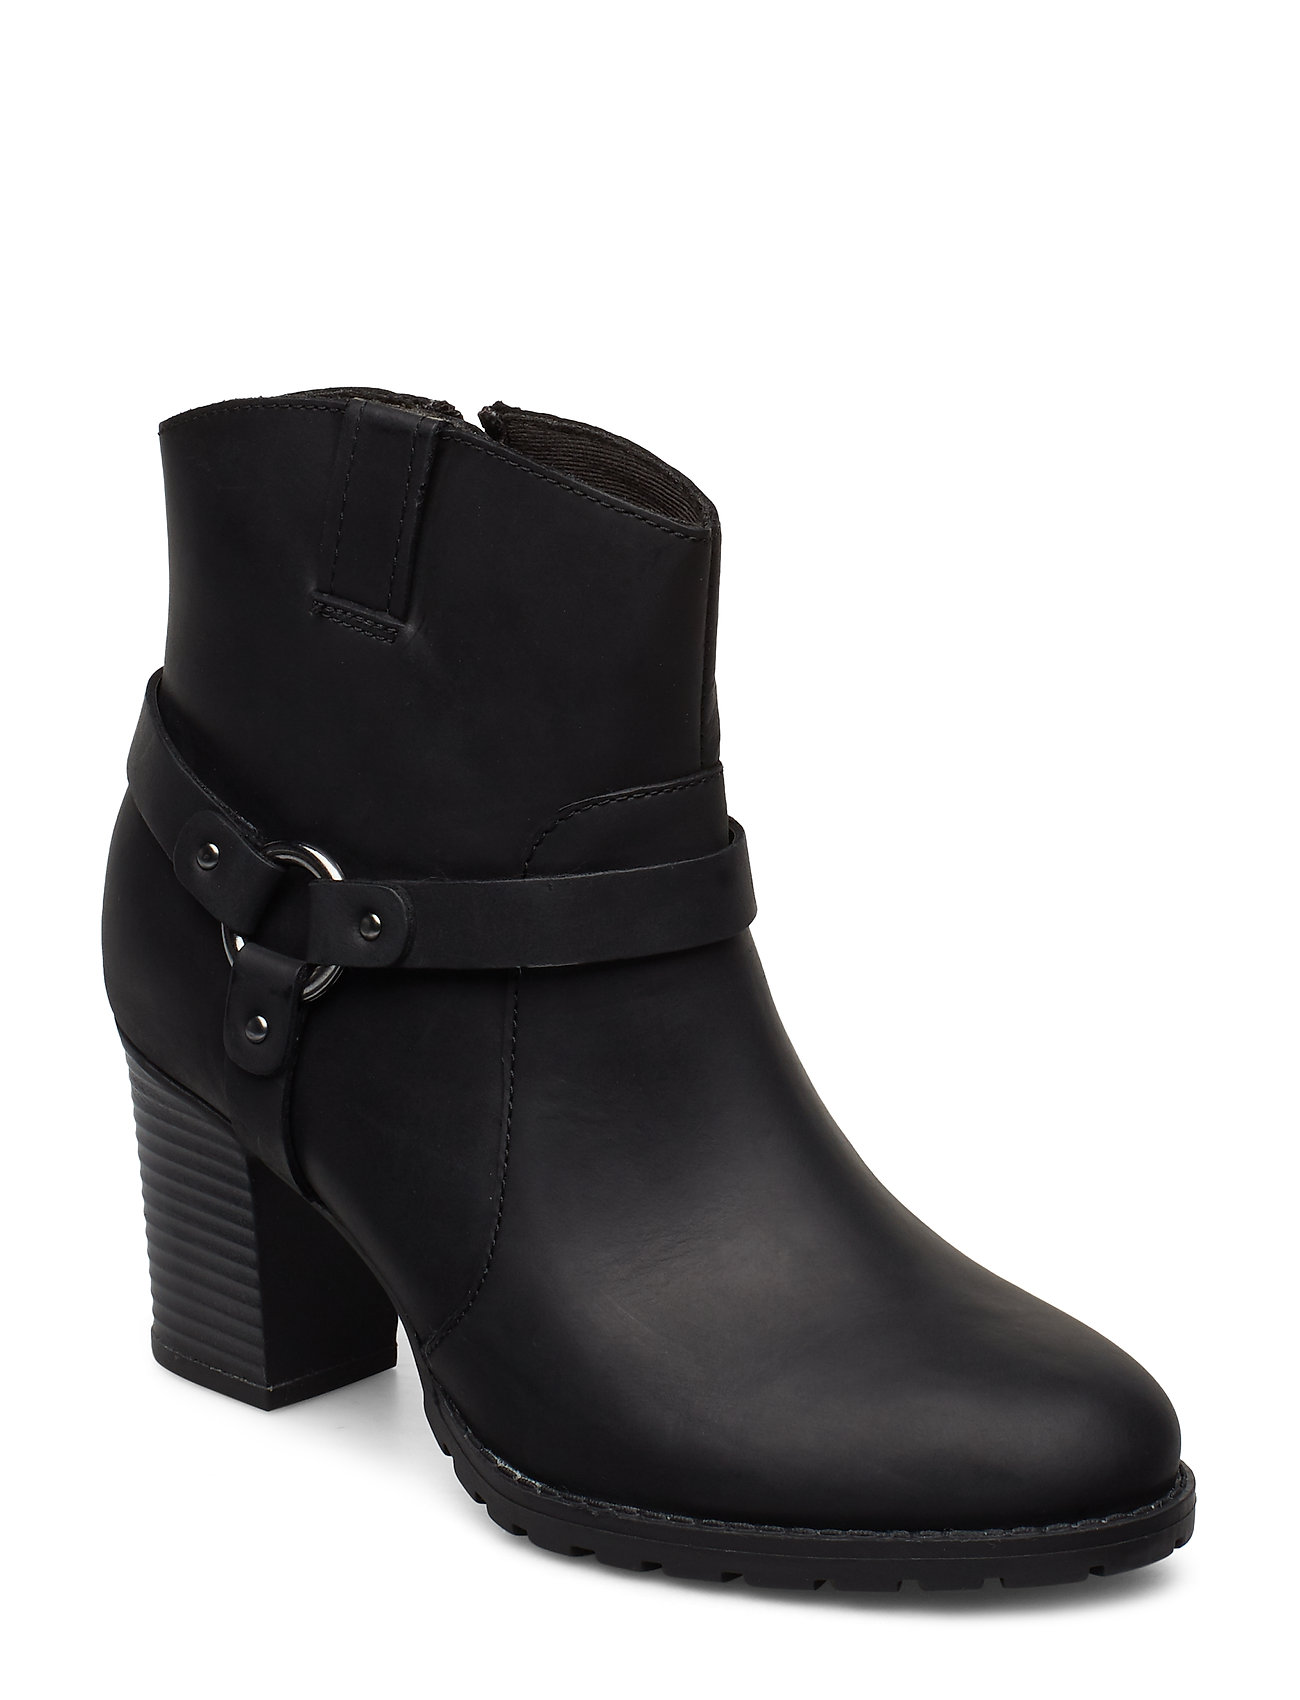 CLARKS Verona Rock Shoes Boots Ankle Boots Ankle Boots With Heel Schwarz CLARKS